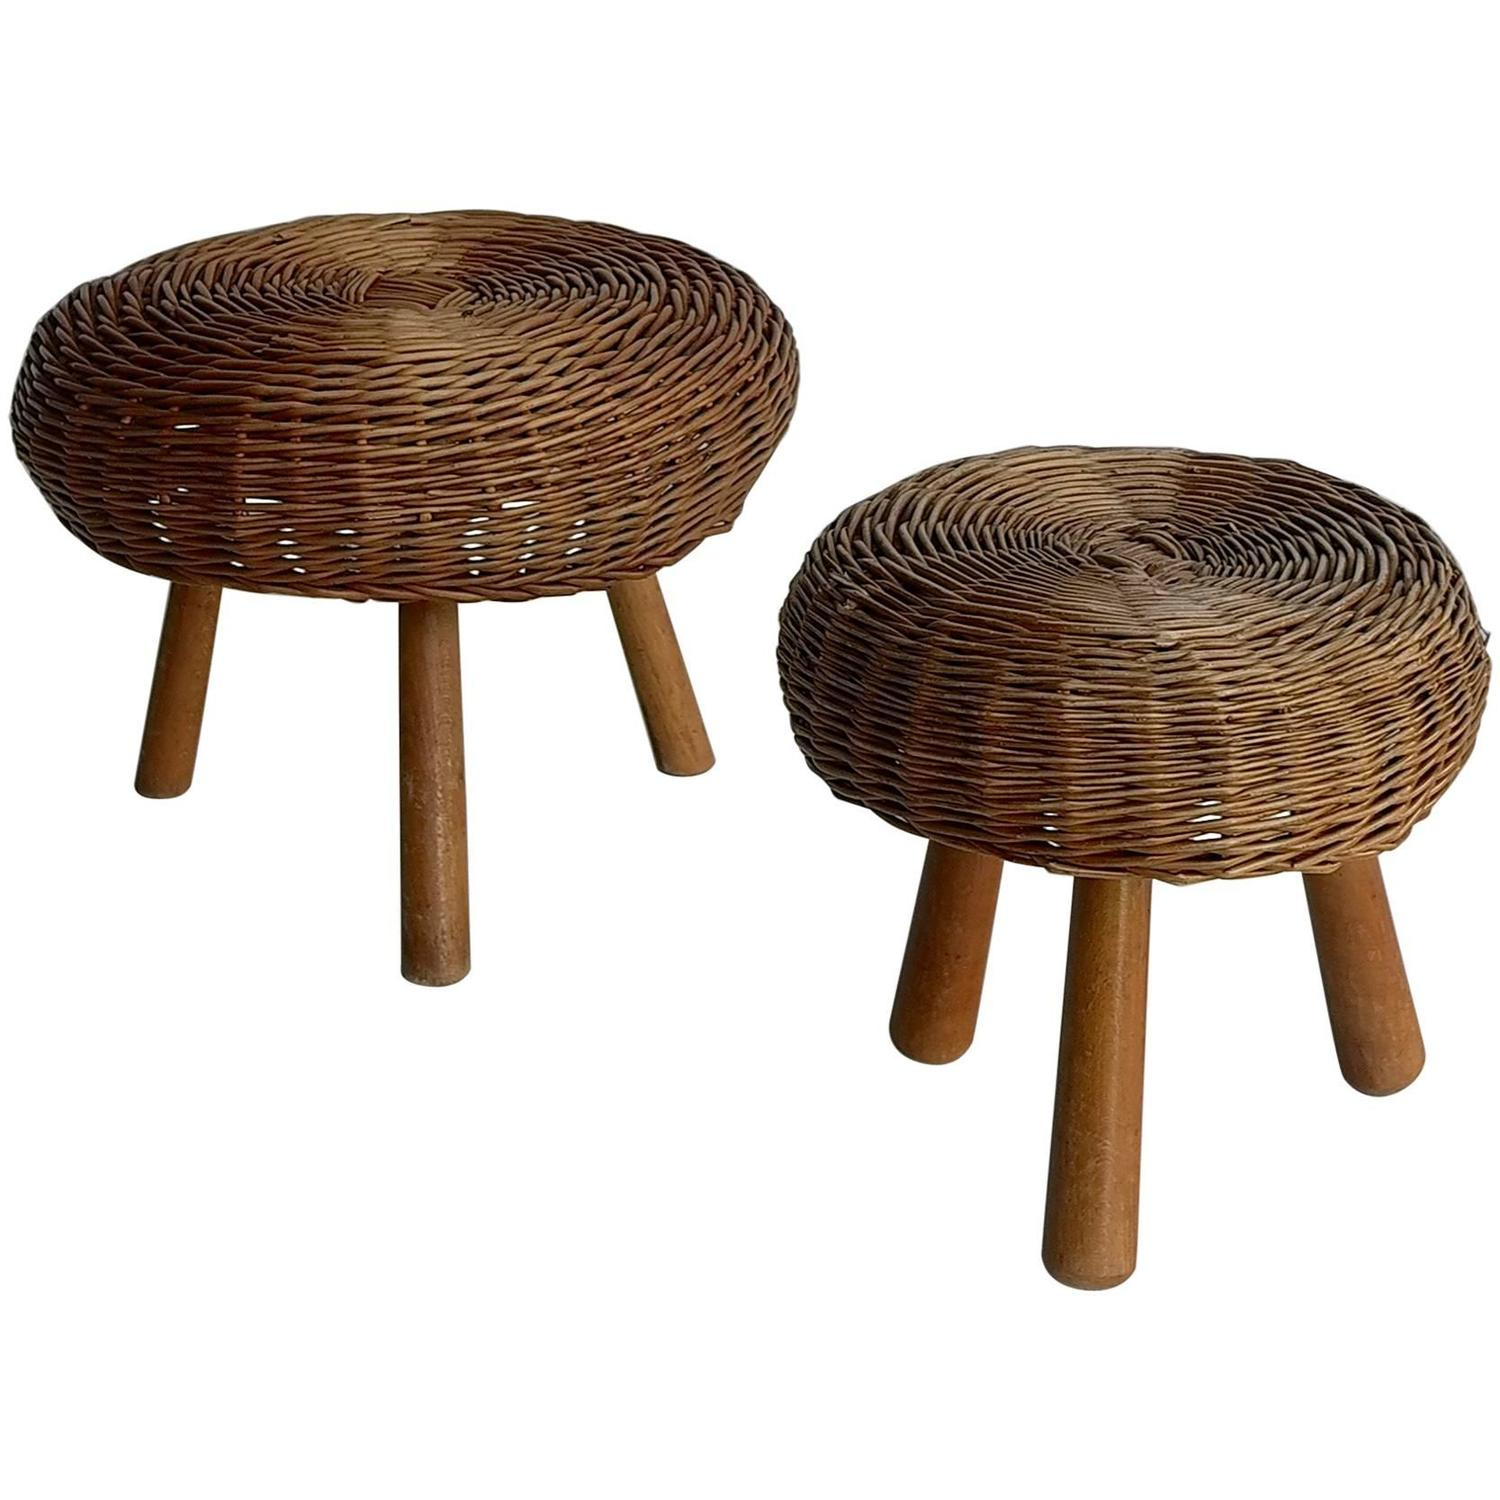 French Wicker Stools In Style Of Charlotte Perriand For